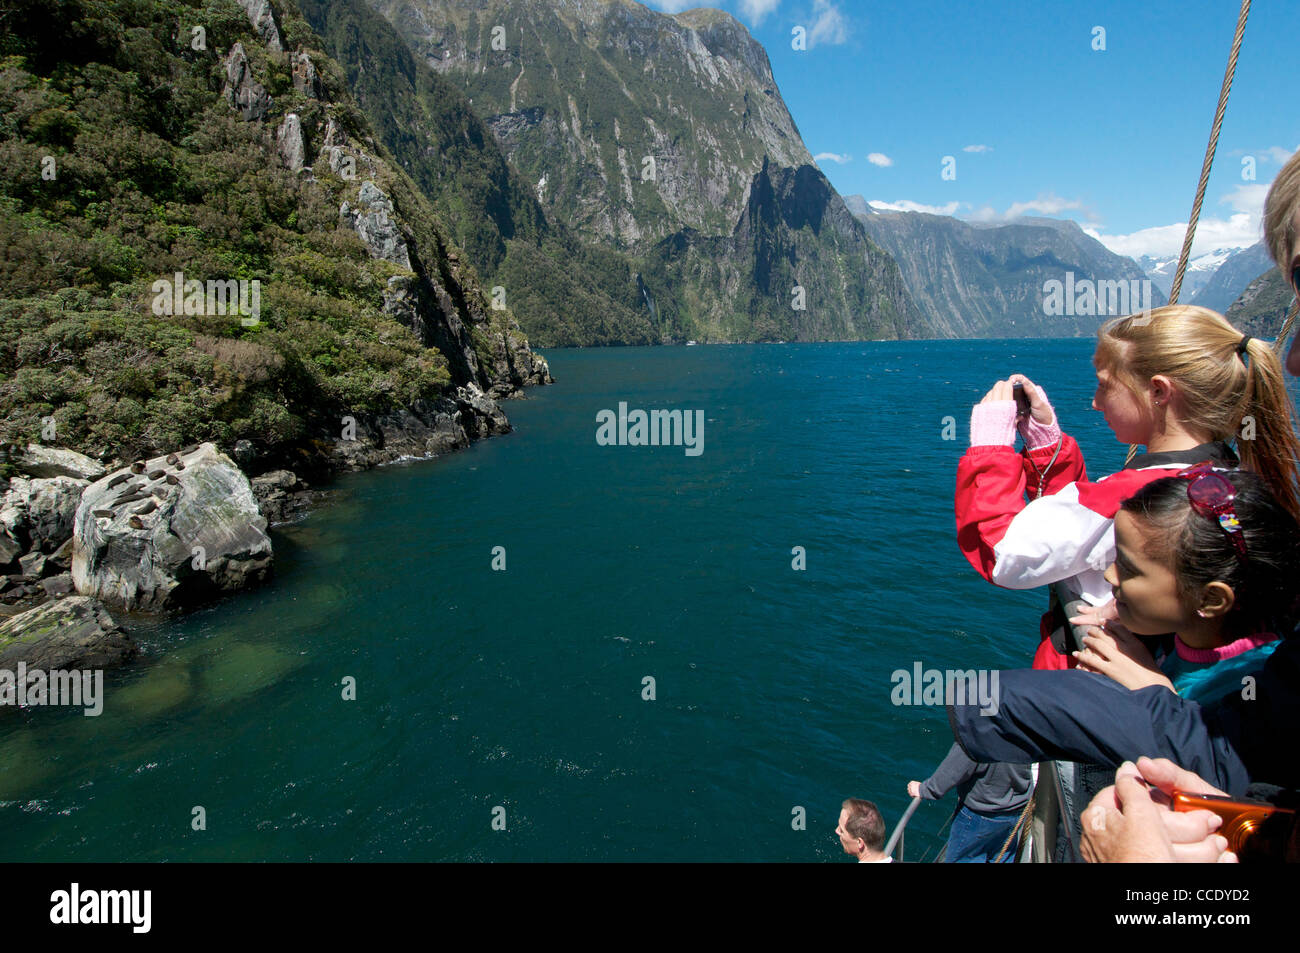 Passengers on a cruise sip photographing fur Seals sunning themselves a rock in Milford Sound - Stock Image